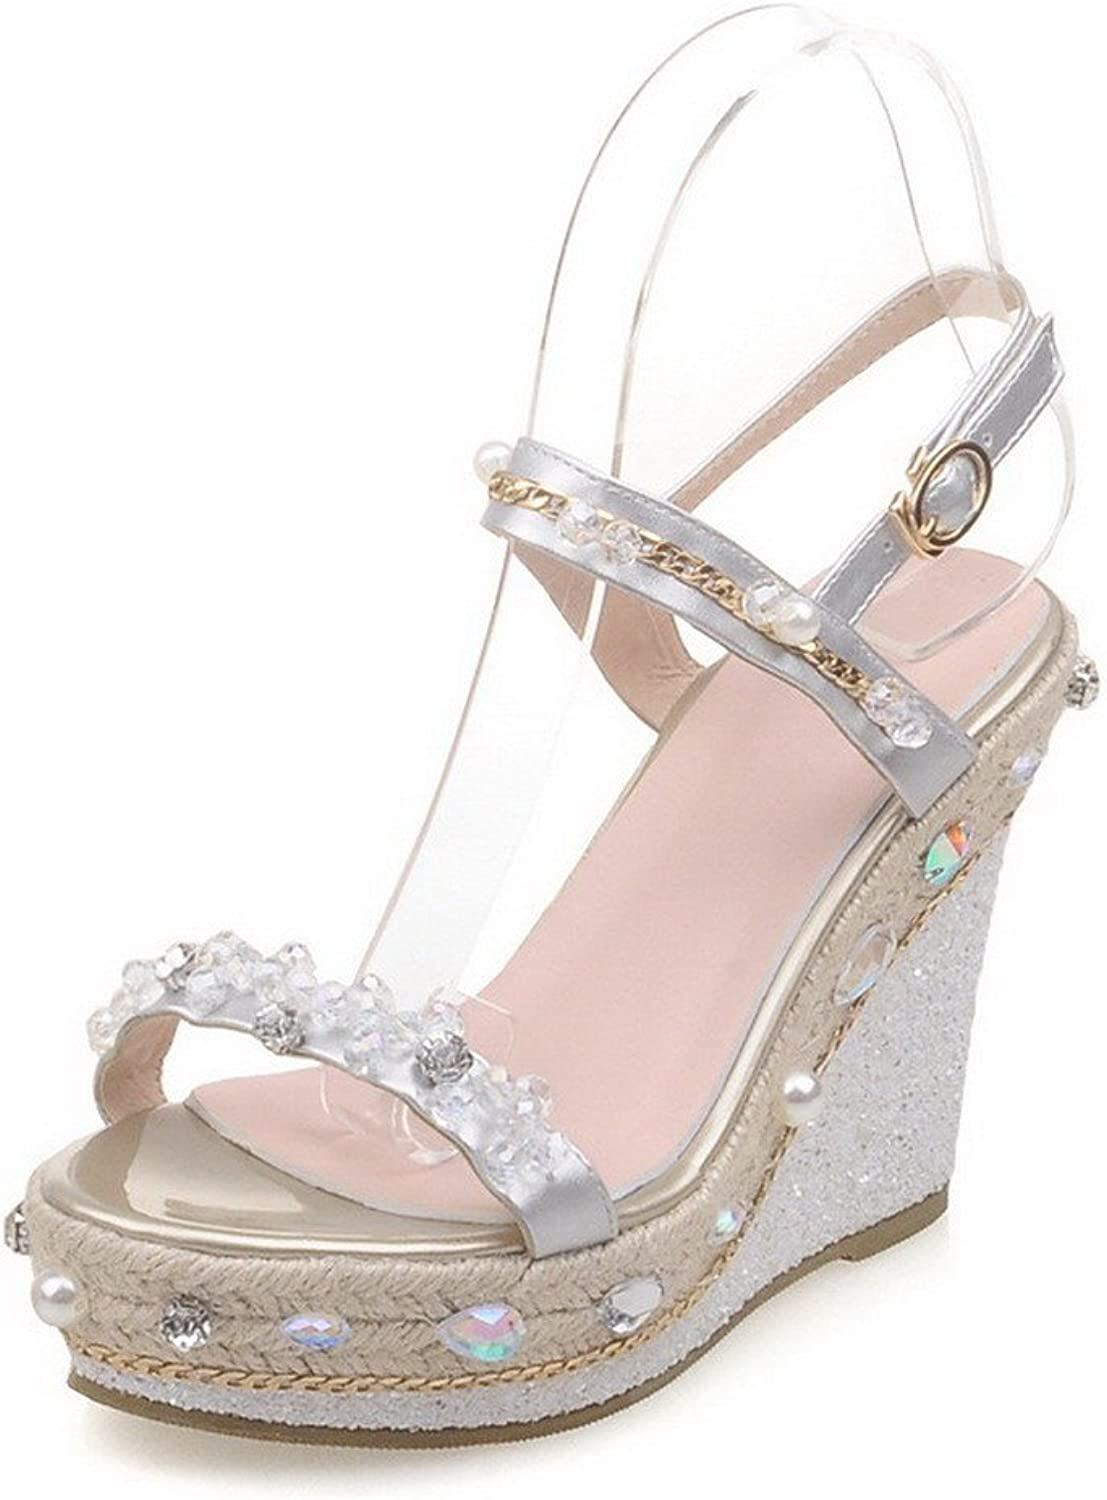 AmoonyFashion Women's Open-Toe Buckle Pu Solid High Heels Sandals